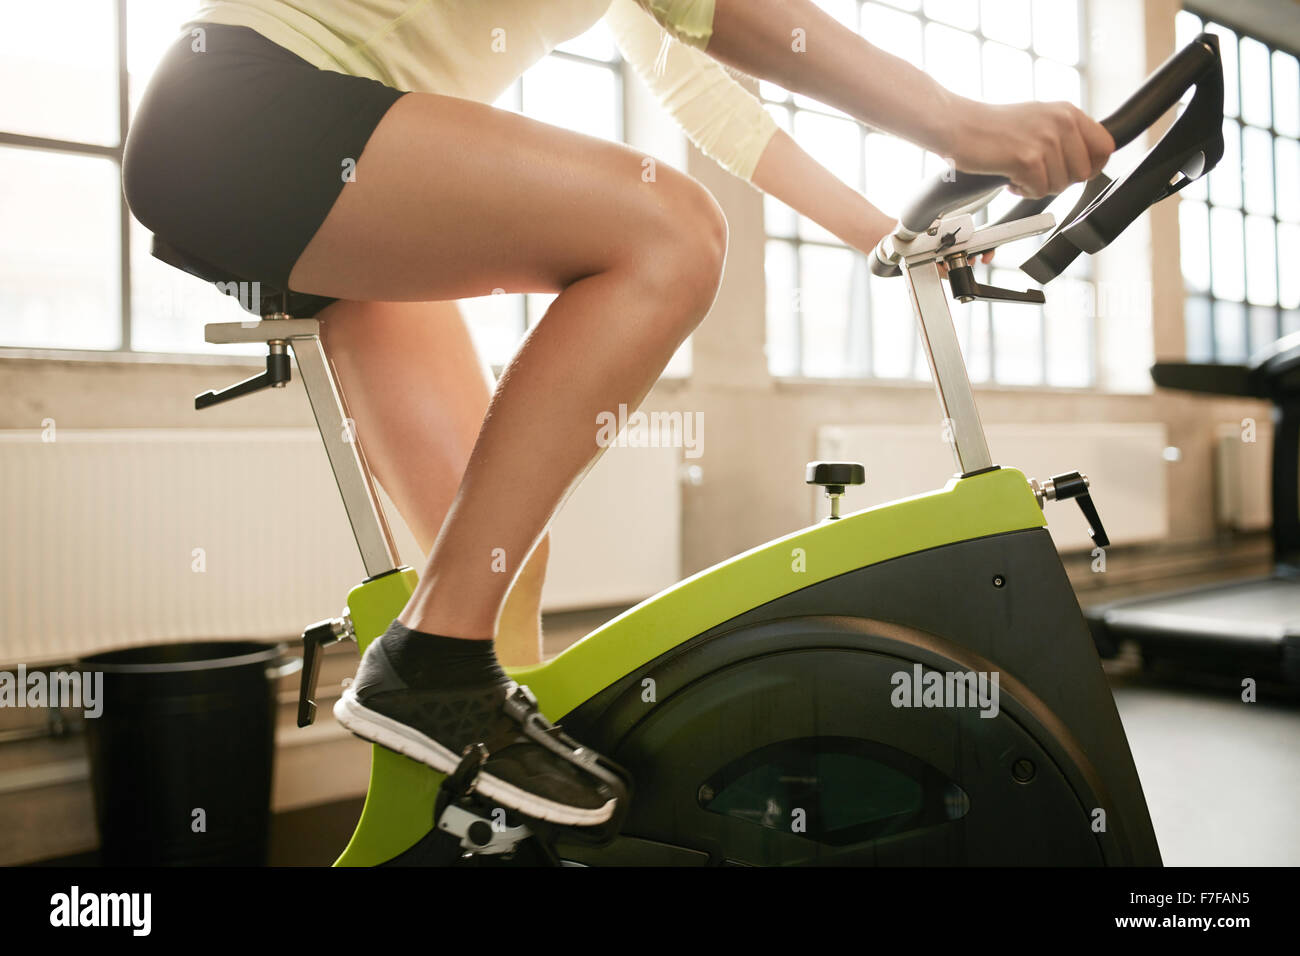 Cropped shot of fitness woman working out on exercise bike at the gym. Female exercising on bicycle in health club, - Stock Image